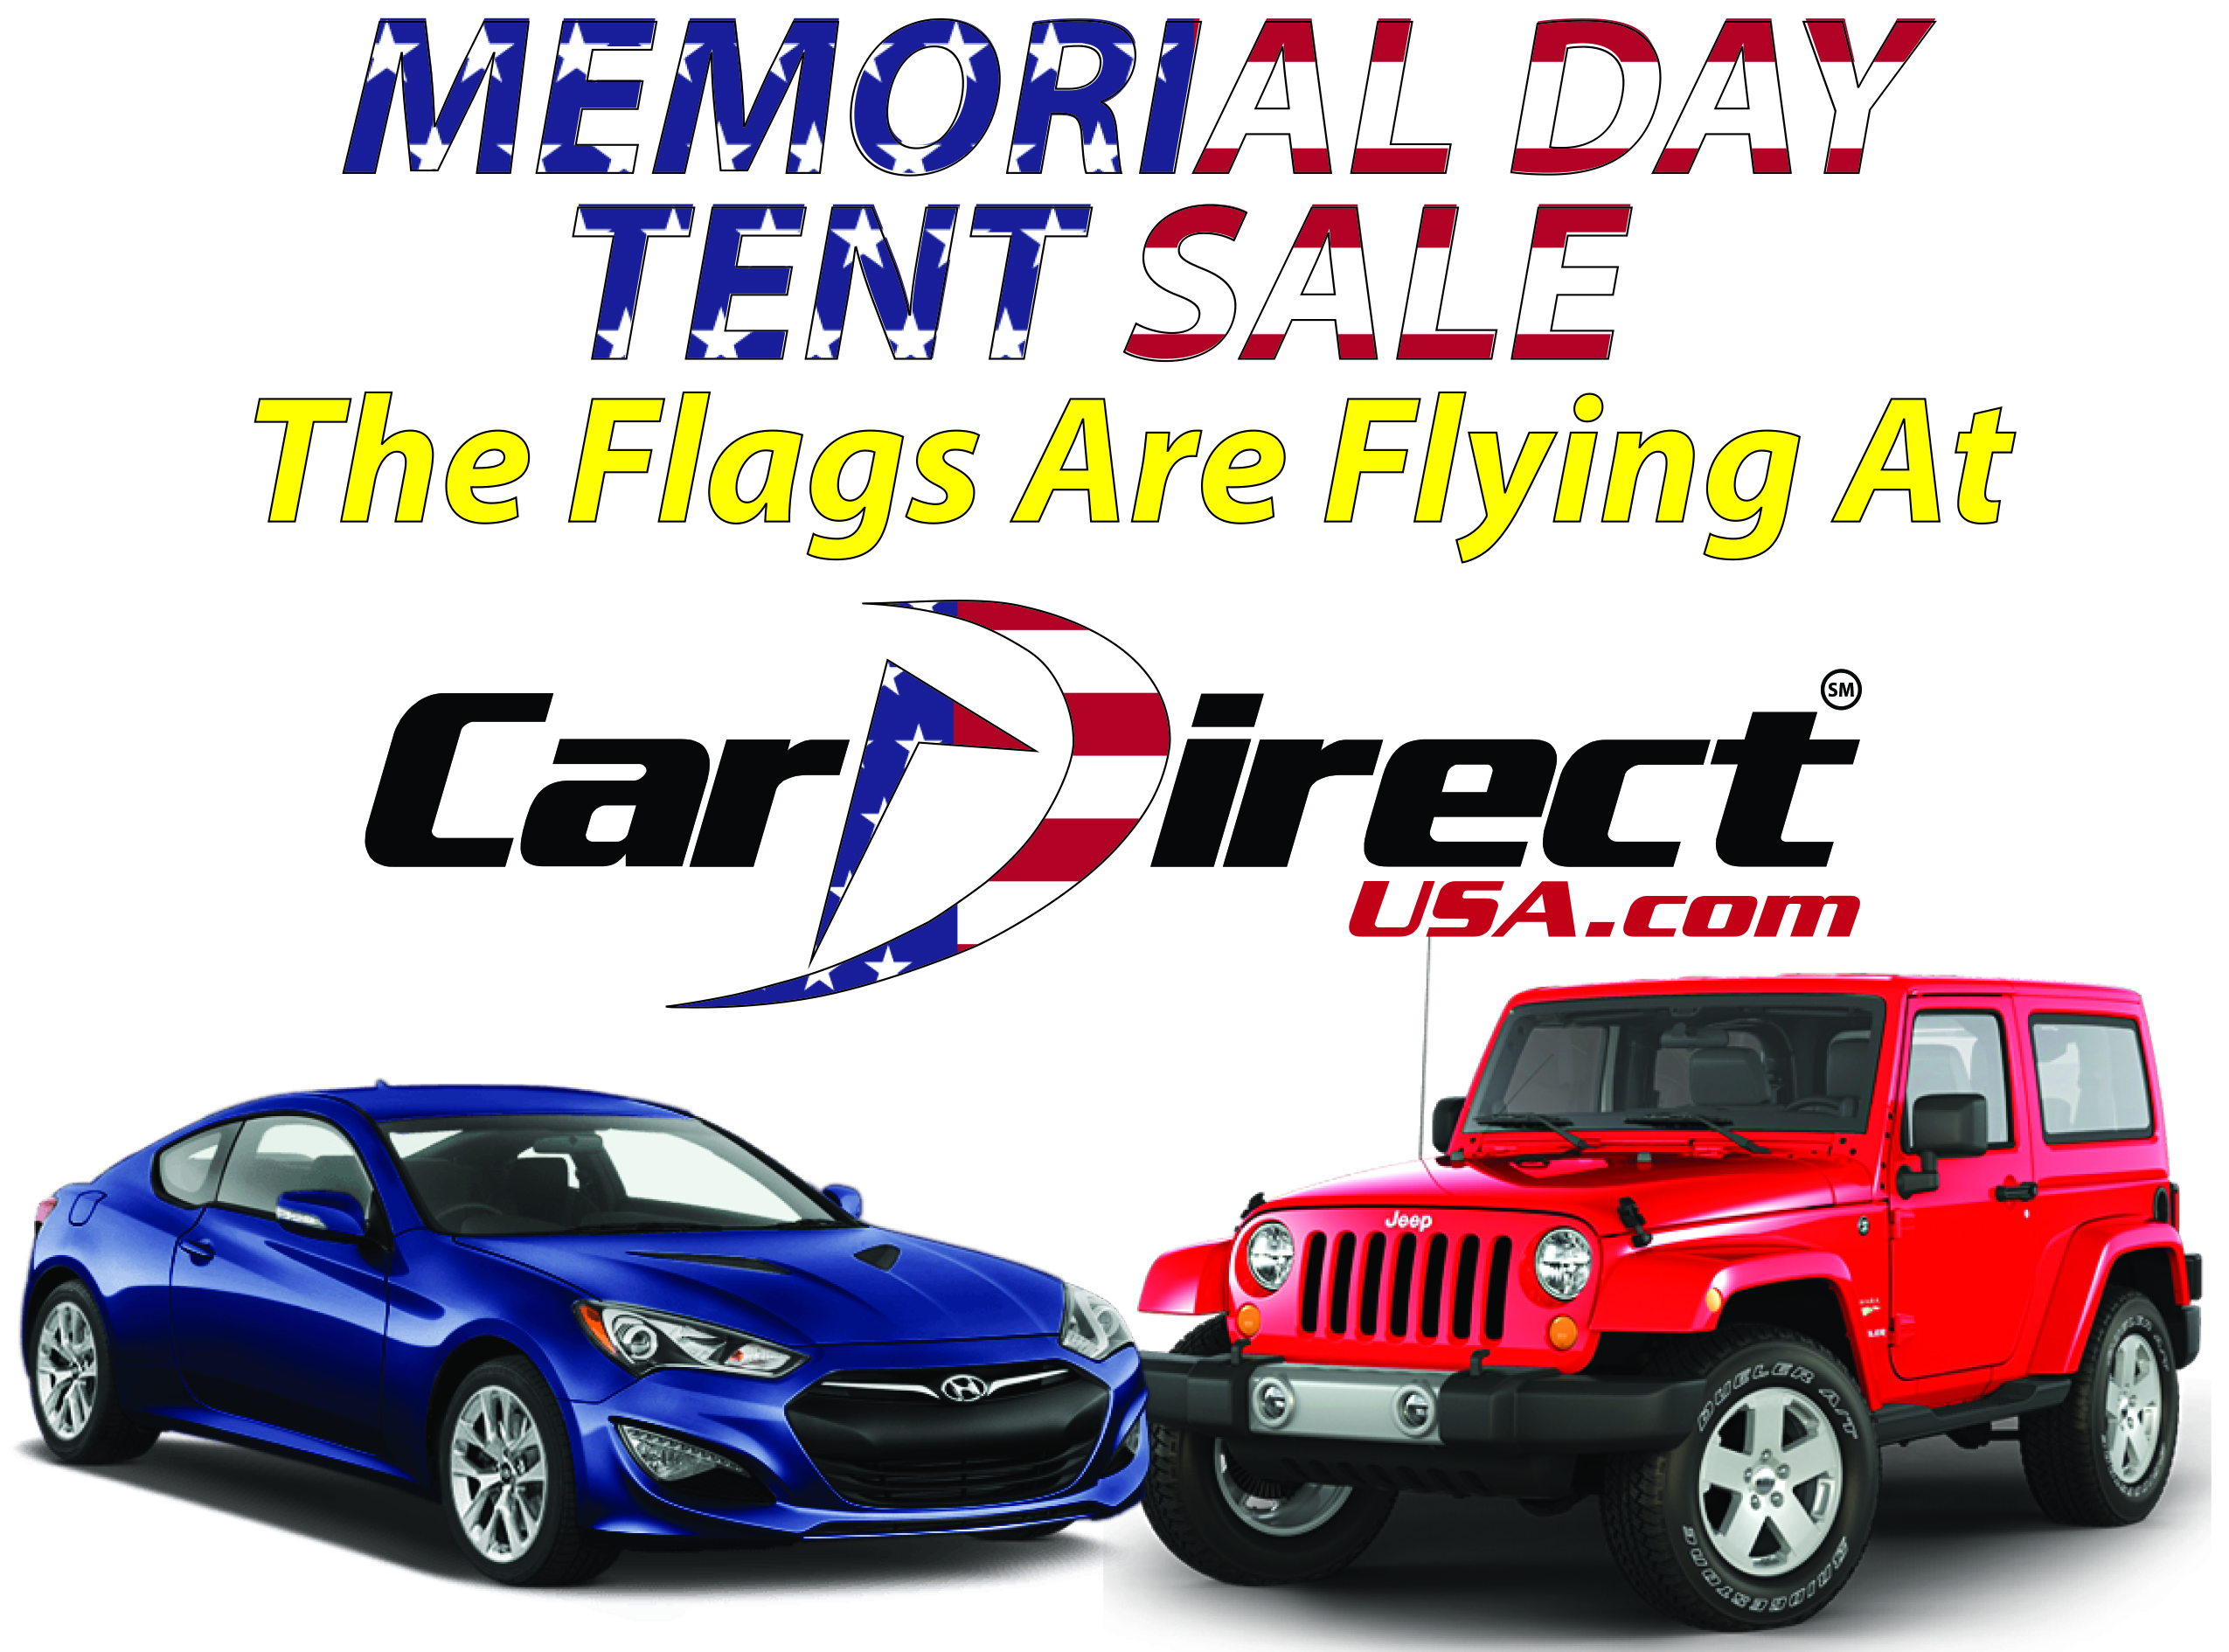 Holiday Specials and Sales Archives - Car Direct LLC